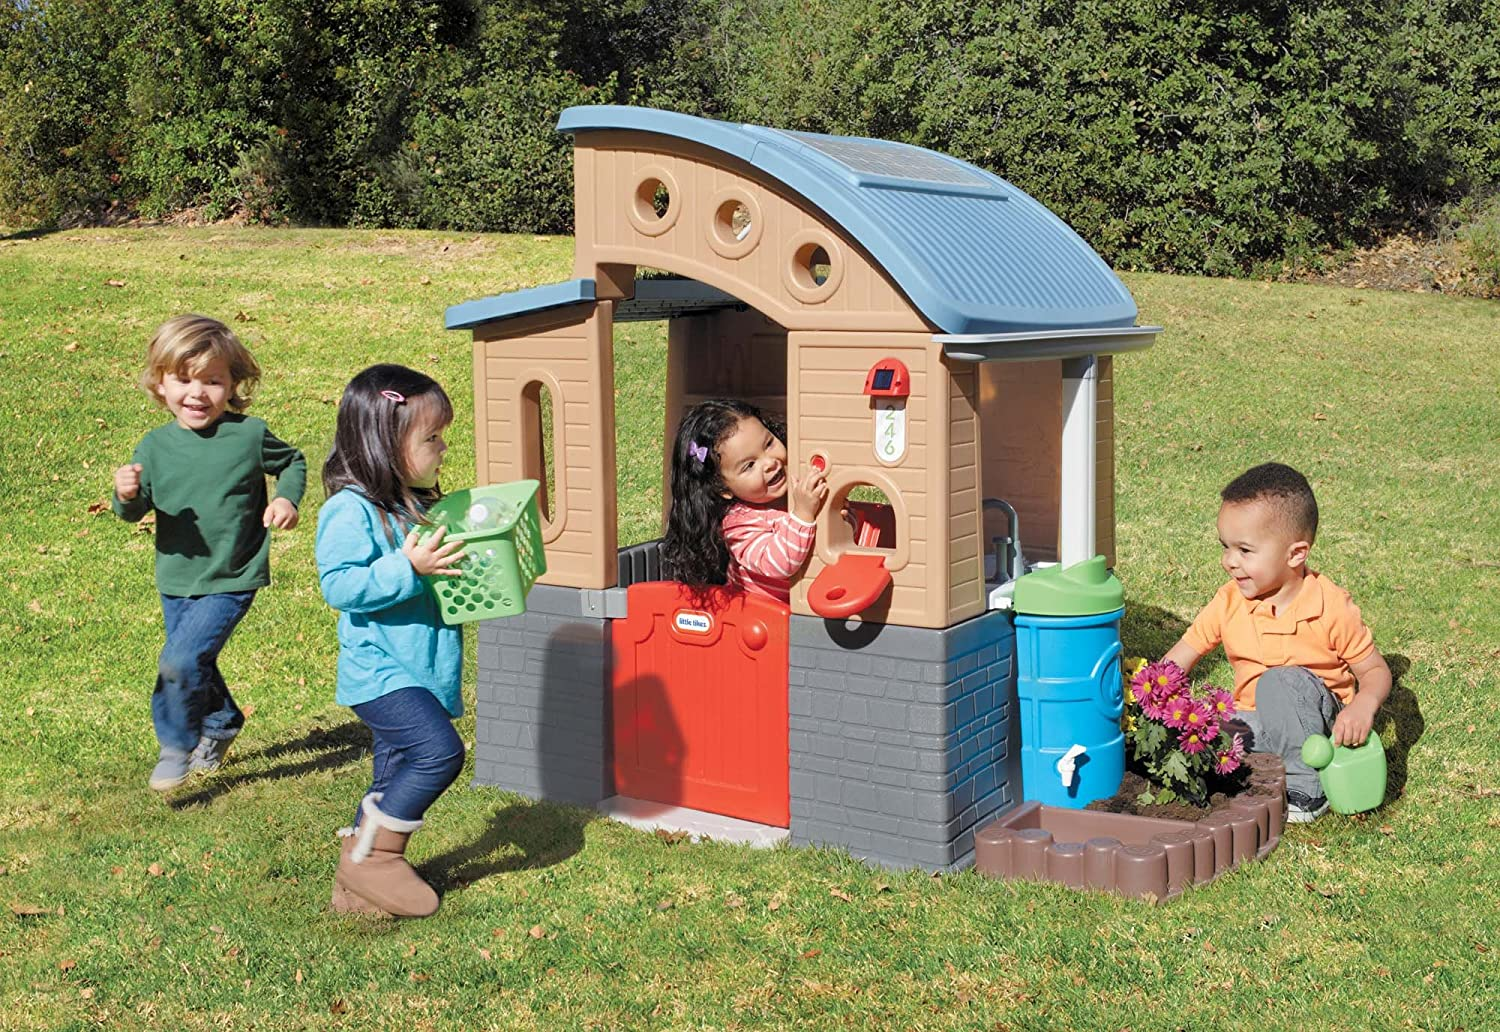 Top 11 Best Kids Outdoor Playhouses in 2020 Reviews 10